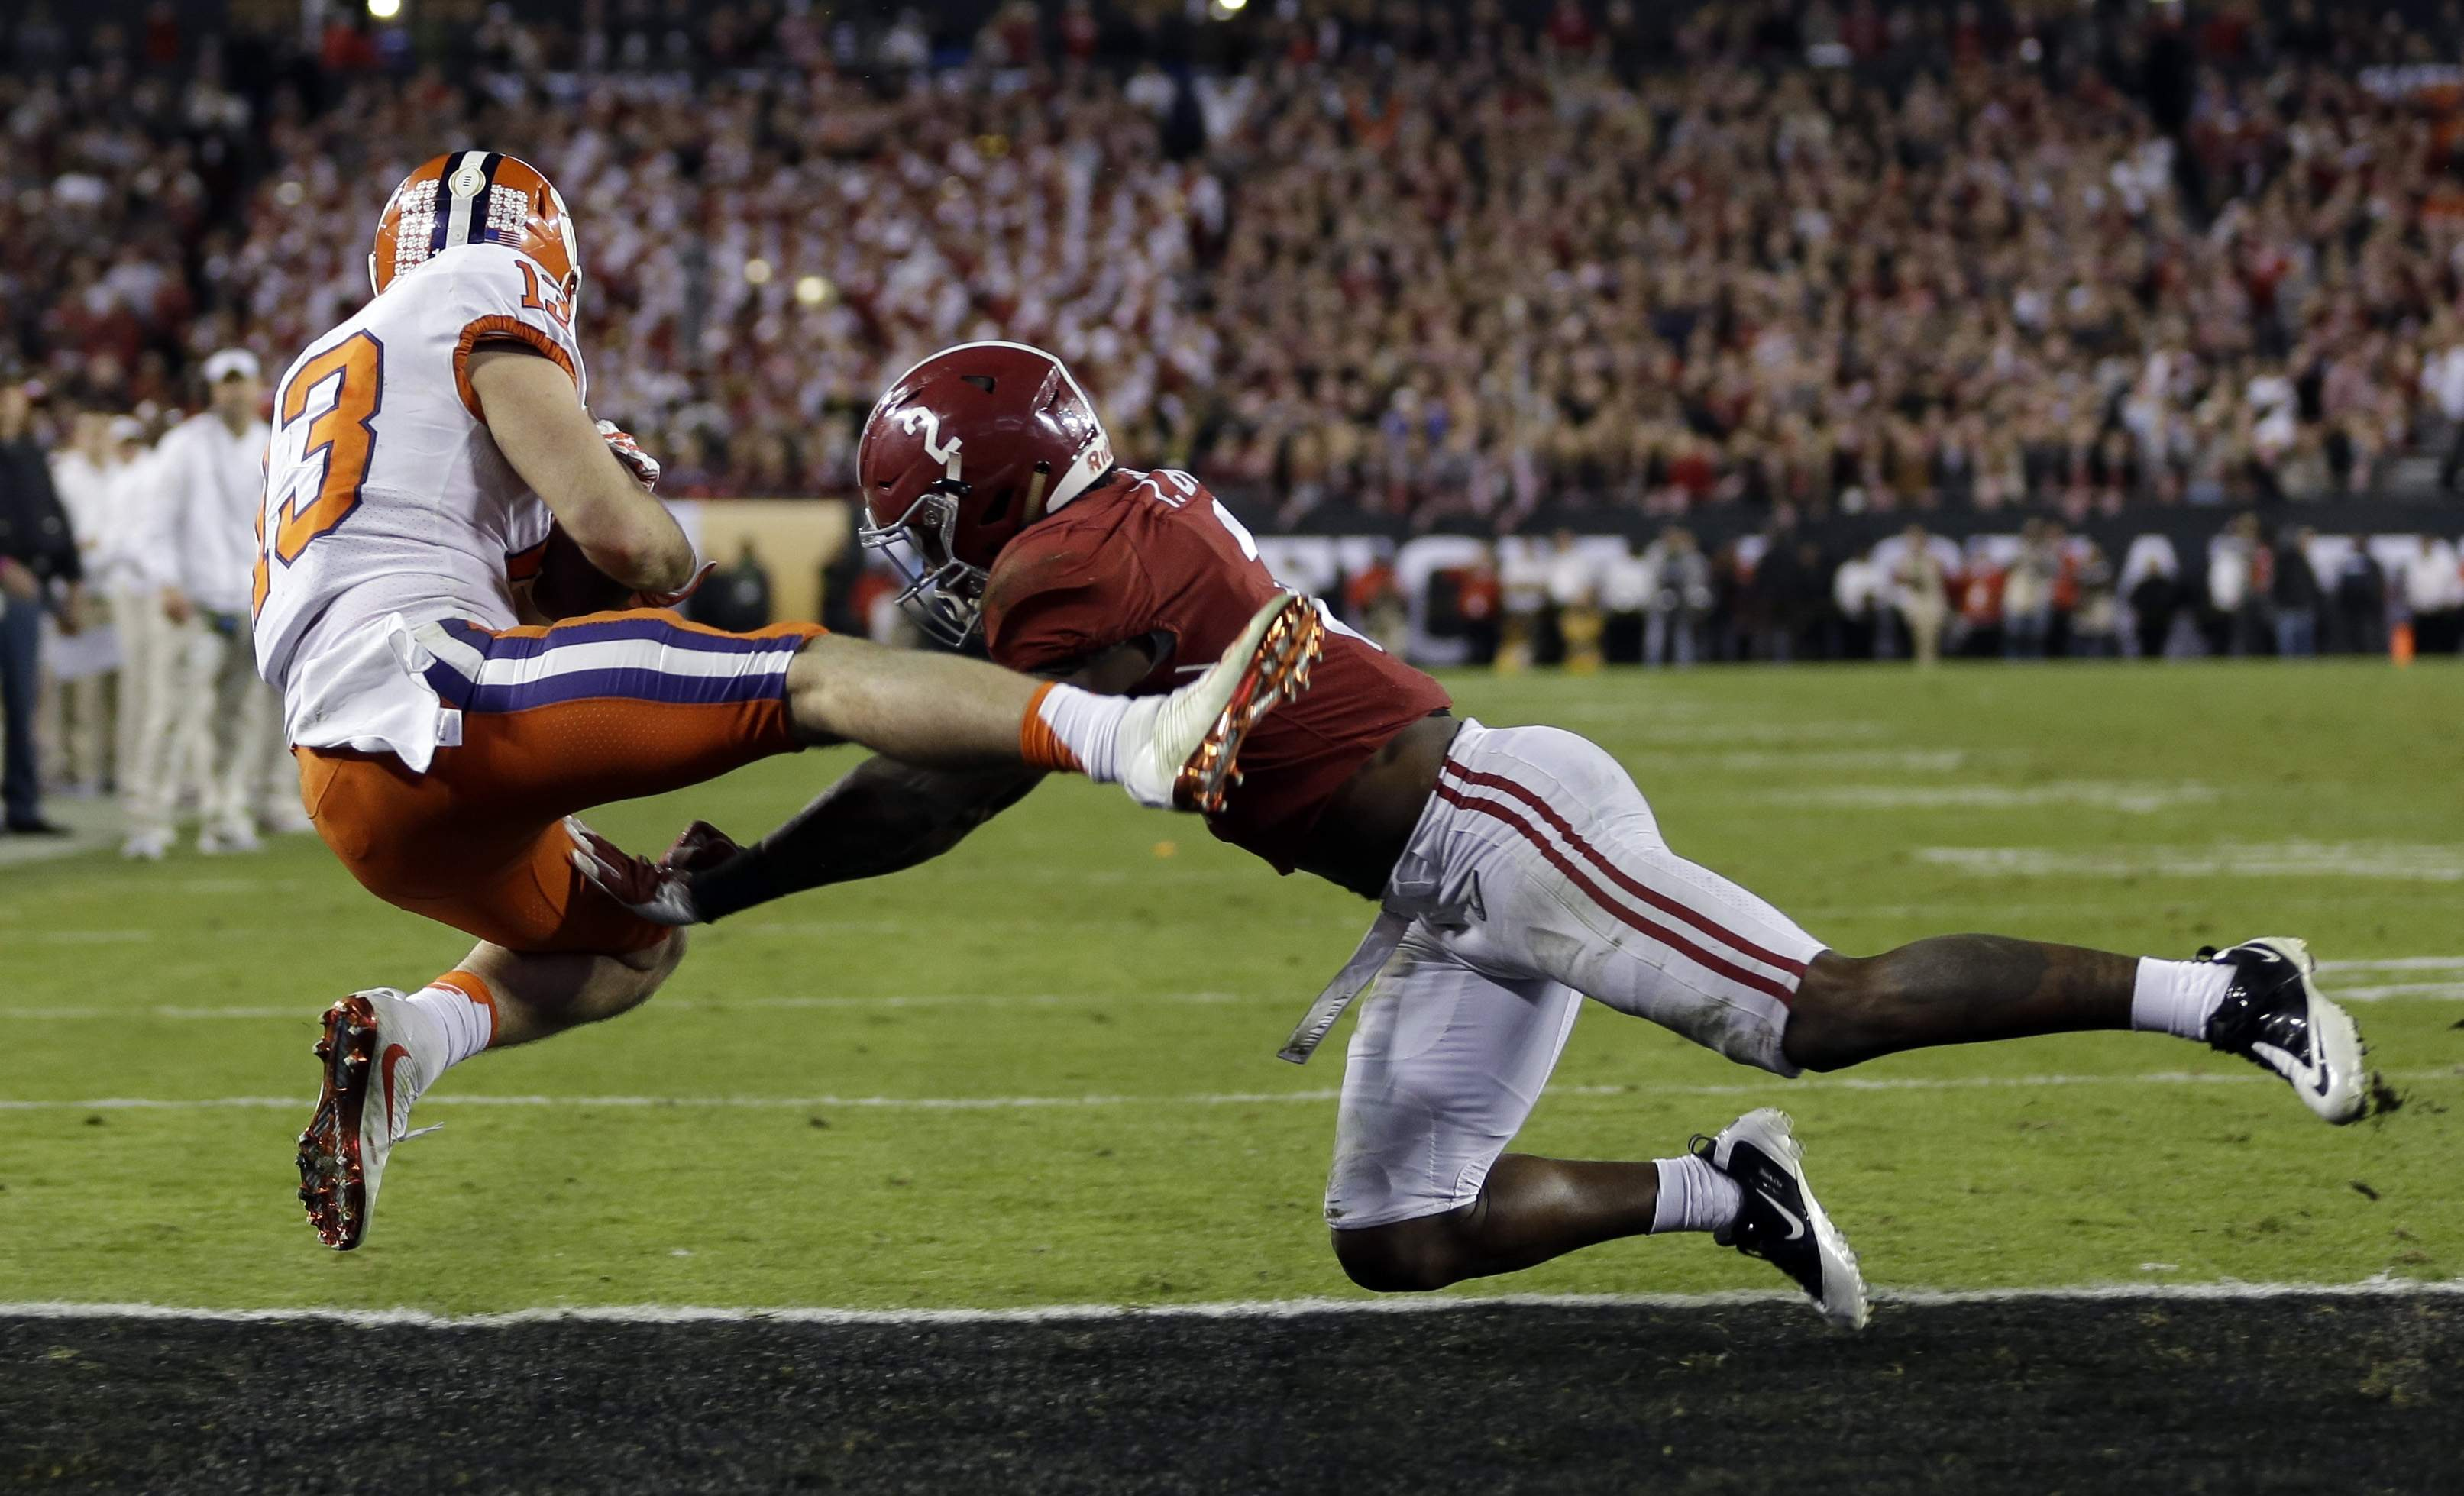 Clemson's Hunter Renfrow catches a touchdown pass in front of Alabama's Tony Brown during the second half of the NCAA college football playoff championship game early Tuesday, Jan. 10, 2017, in Tampa, Fla. THE ASSOCIATED PRESS